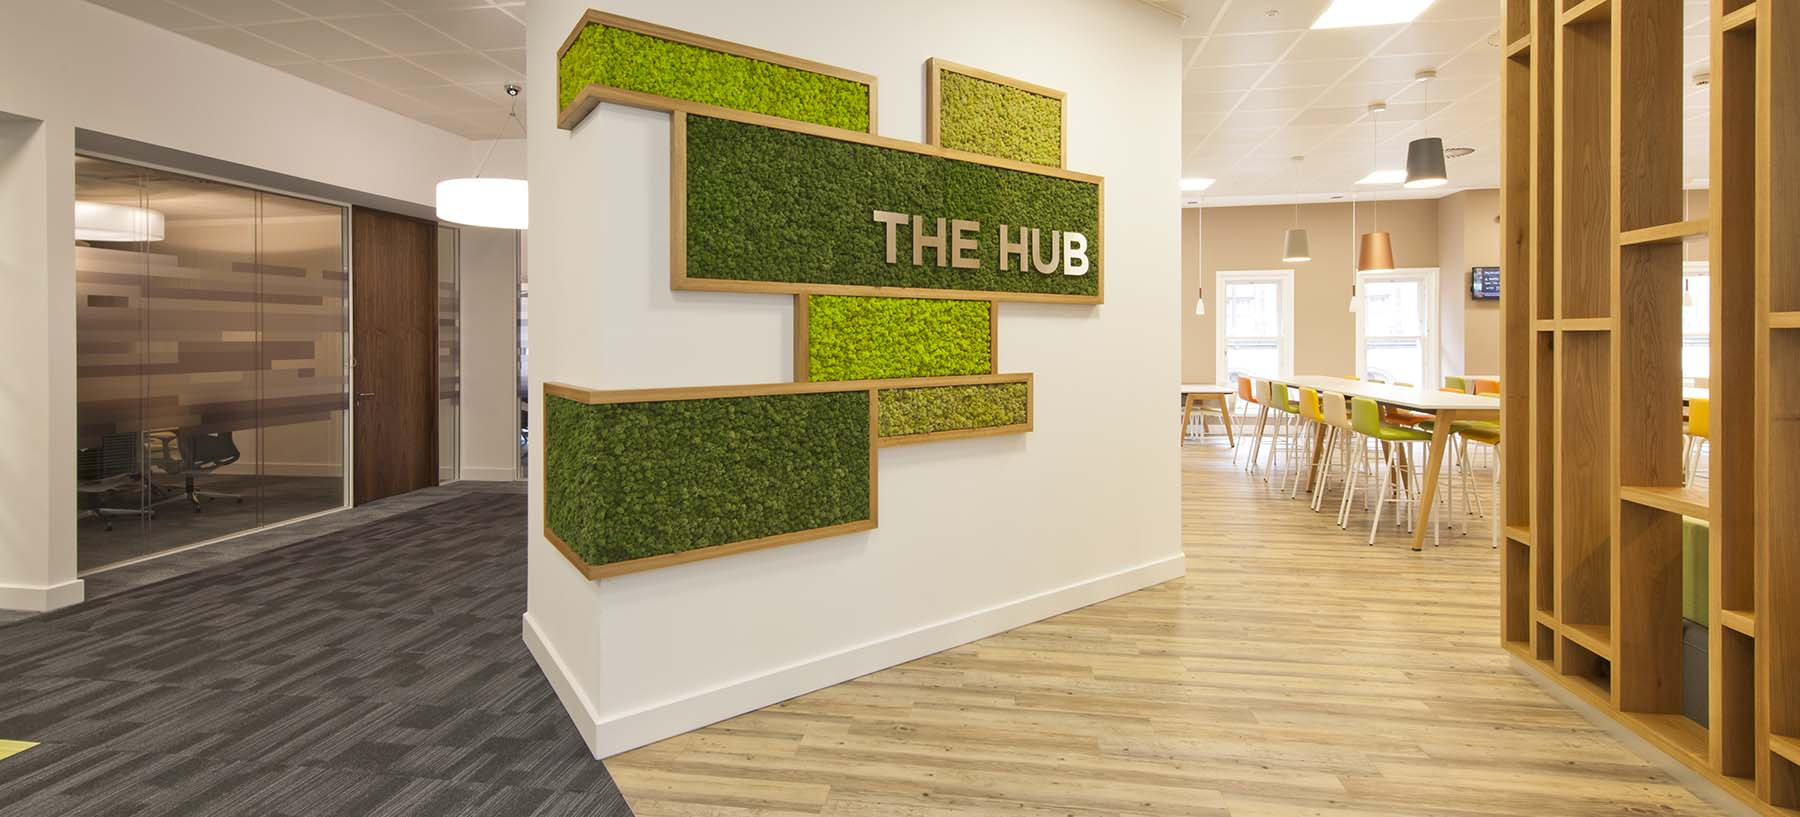 Wraparound Nordik Moss wall feature in bespoke oak frame with stainless steel signage for Glasgow office breakout area